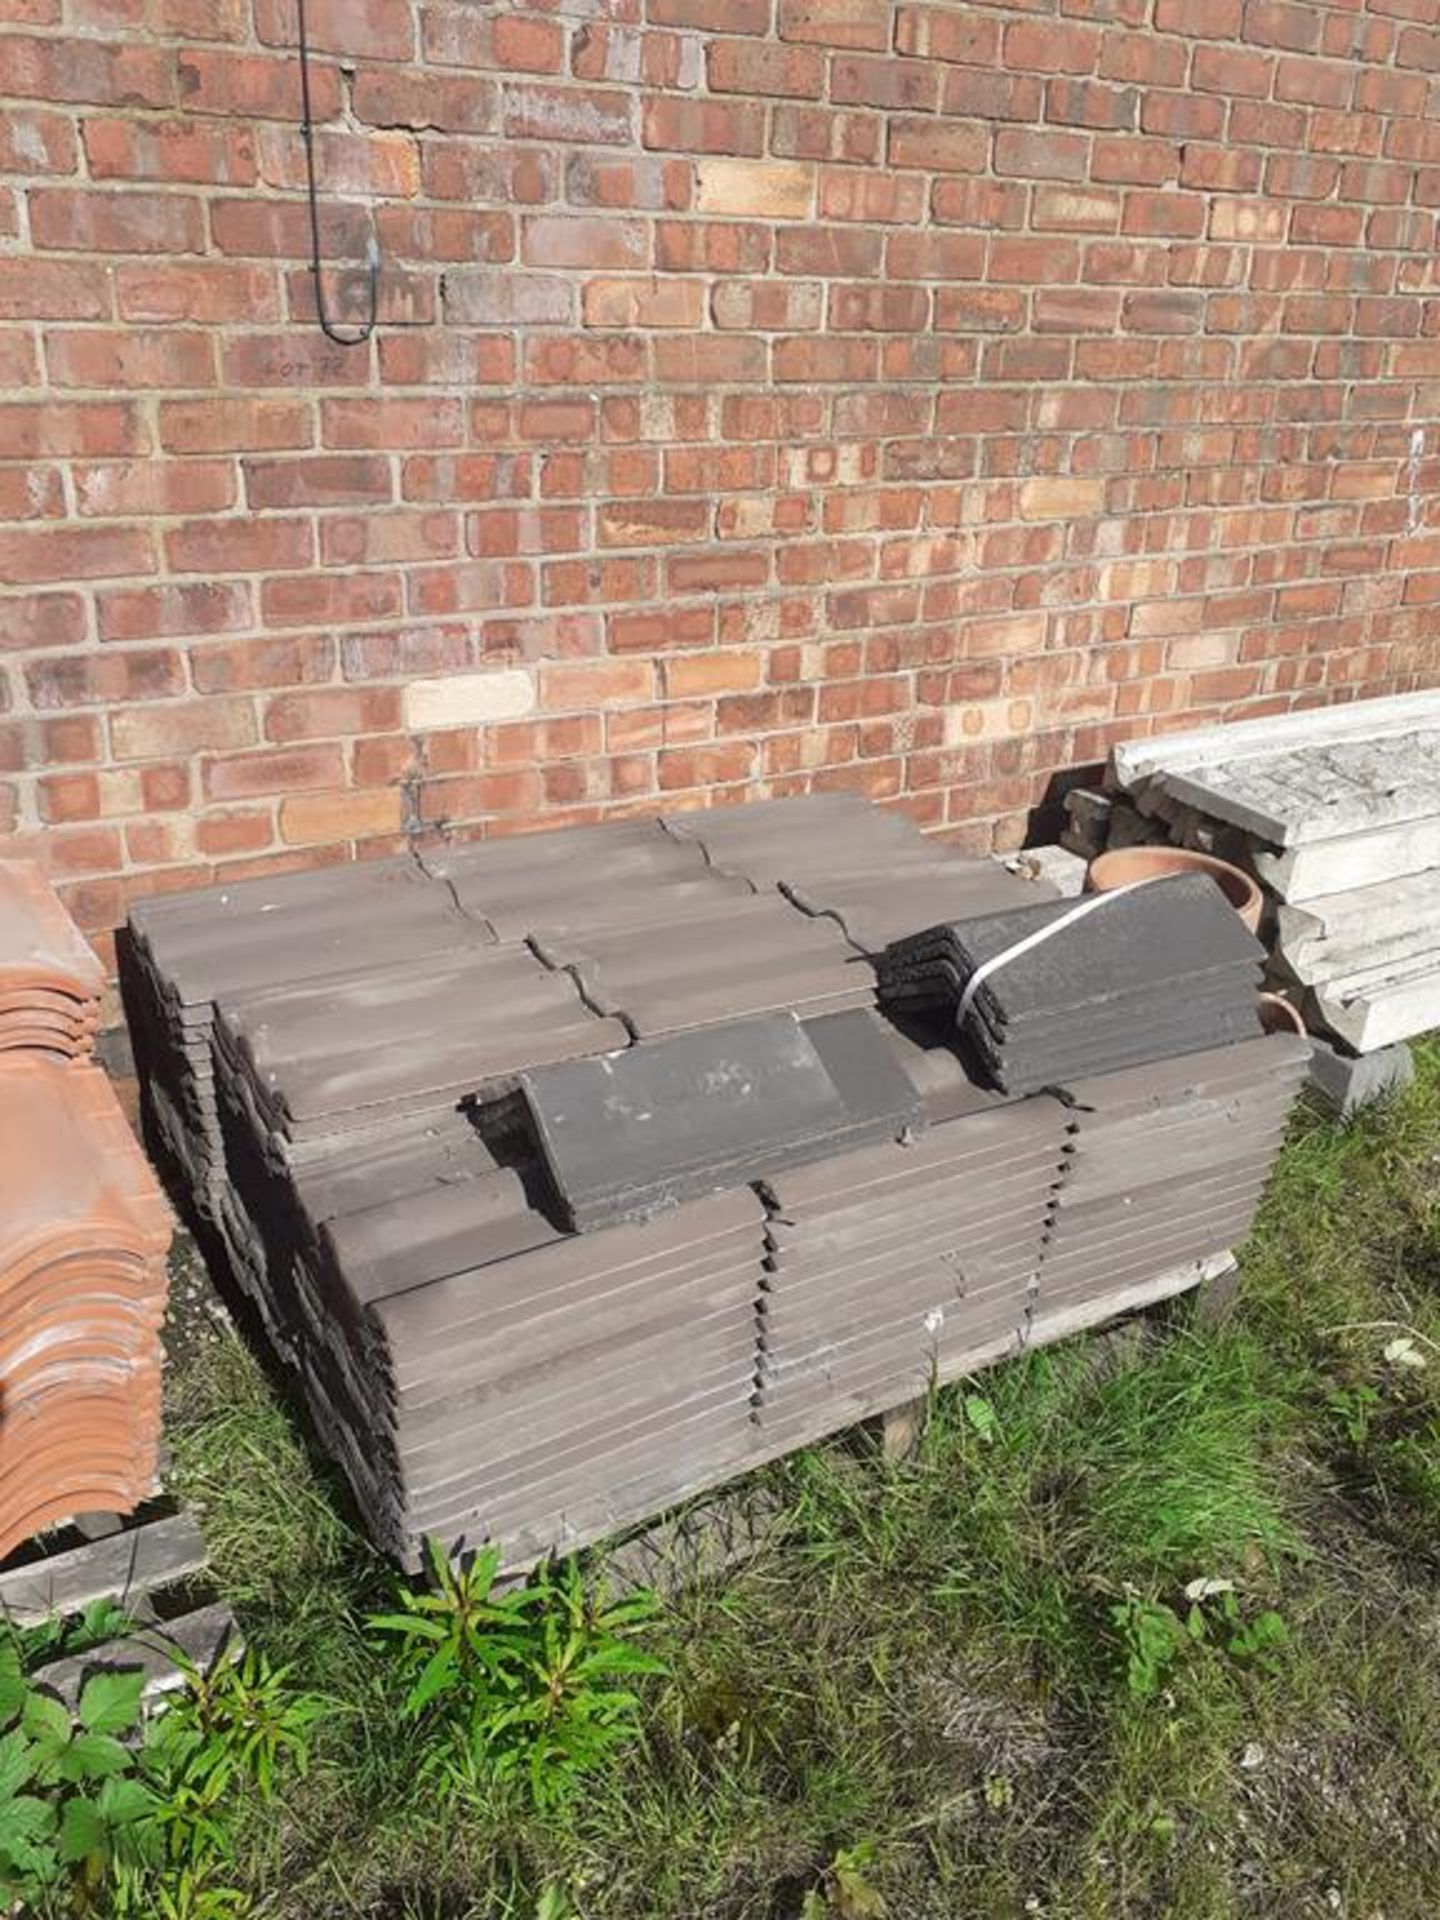 Pallet to contain qty of roof tiles